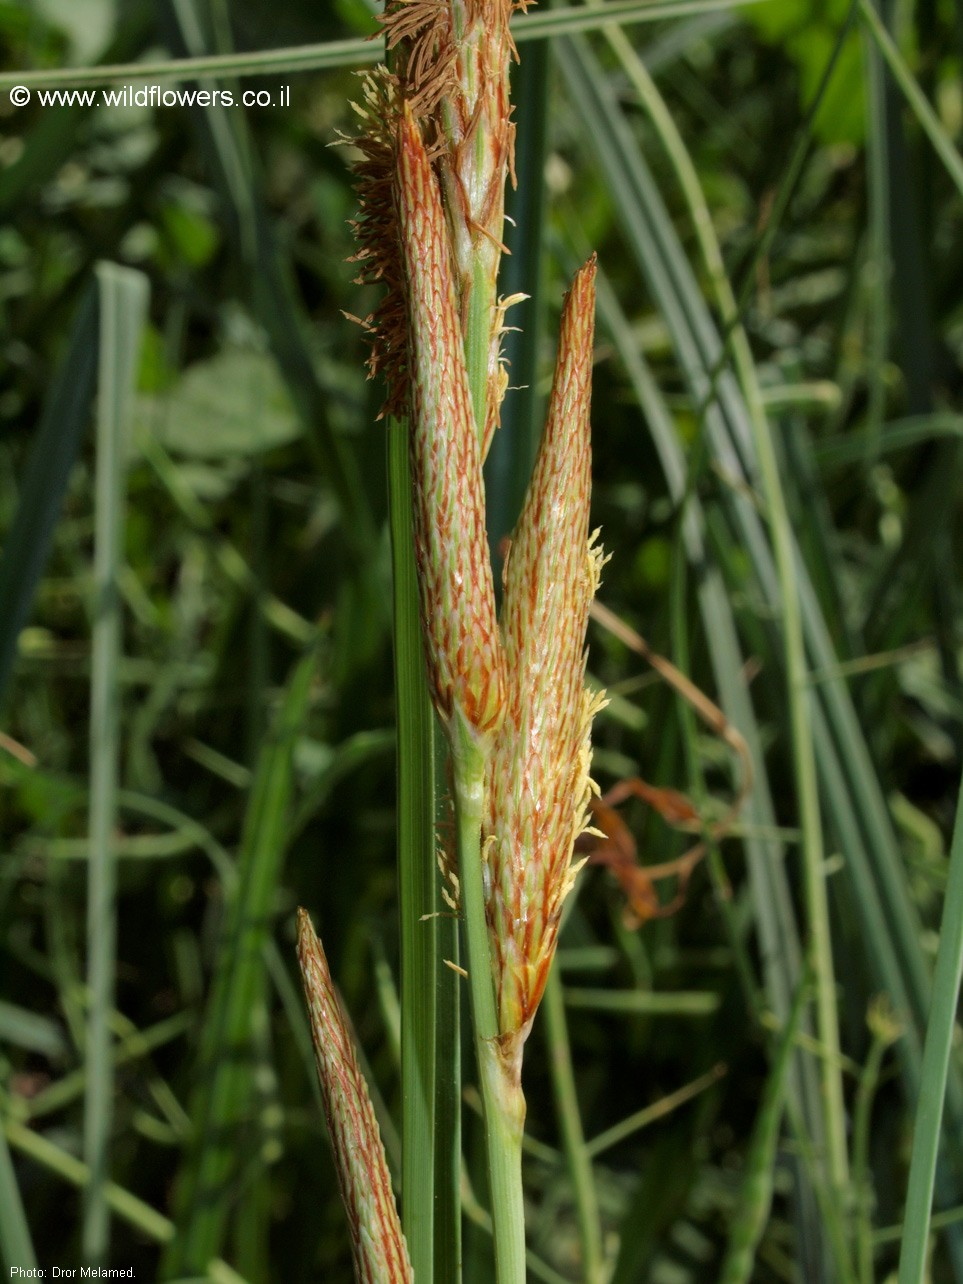 Carex hispida